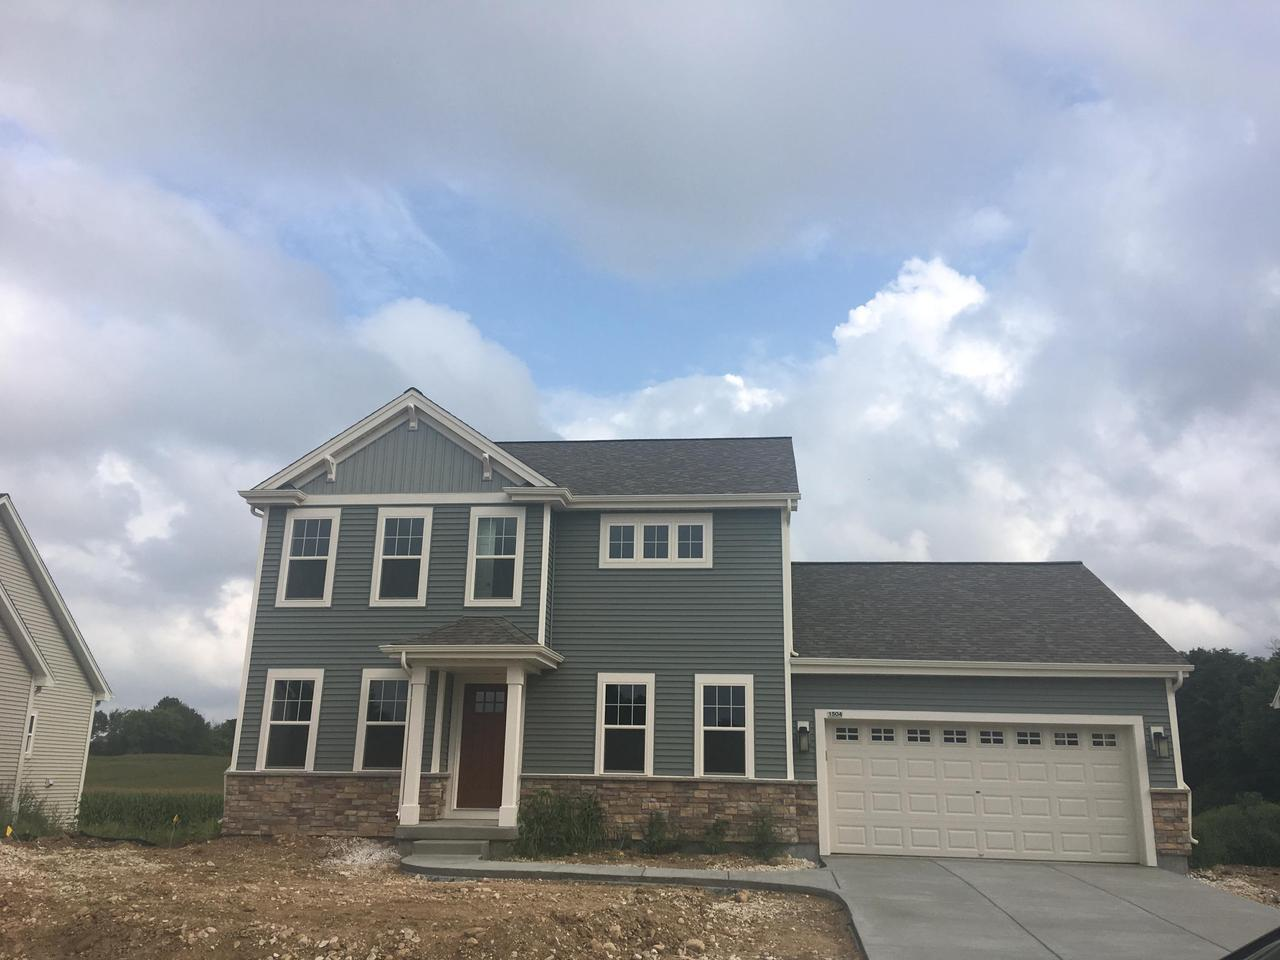 """Energy-Efficient NEW Construction built for the way YOU live - Ready June 2018! 4BR, 2.5 Bth Moorland Plan with 2+ car garage. Kitchen includes Island with Sink and 10"""" Flush Overhang, Hi-Def Laminate, and huge Pantry. Great Room includes a Gas Corner Fireplace with Cultured Stone, Laminate Flooring, and sliding patio doors. Master Suite has Tray Ceiling and Walk-In Closet, 5' Shower, Double Bowl Vanity, and Linen Closet .Other Highlights include Rear Foyer with Lockers, Closet, and Laundry Room. Garage Storage Area, WIC in Bedroom 3 and Money-Saving Eco-Friendly Features throughout!"""